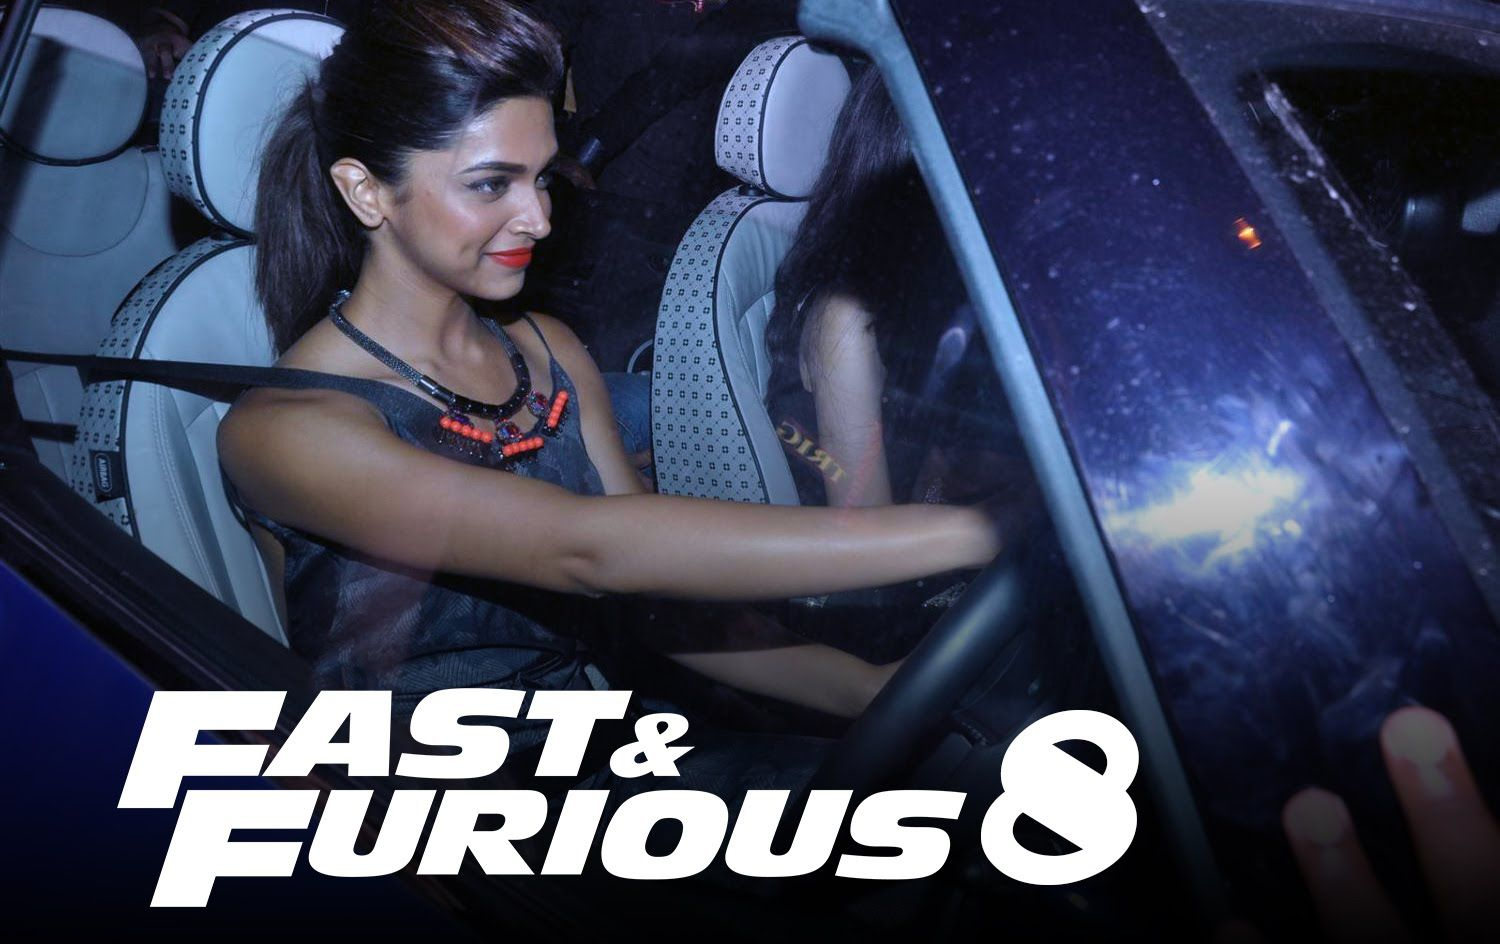 fast and furious 8 full movie download 720p filmywap